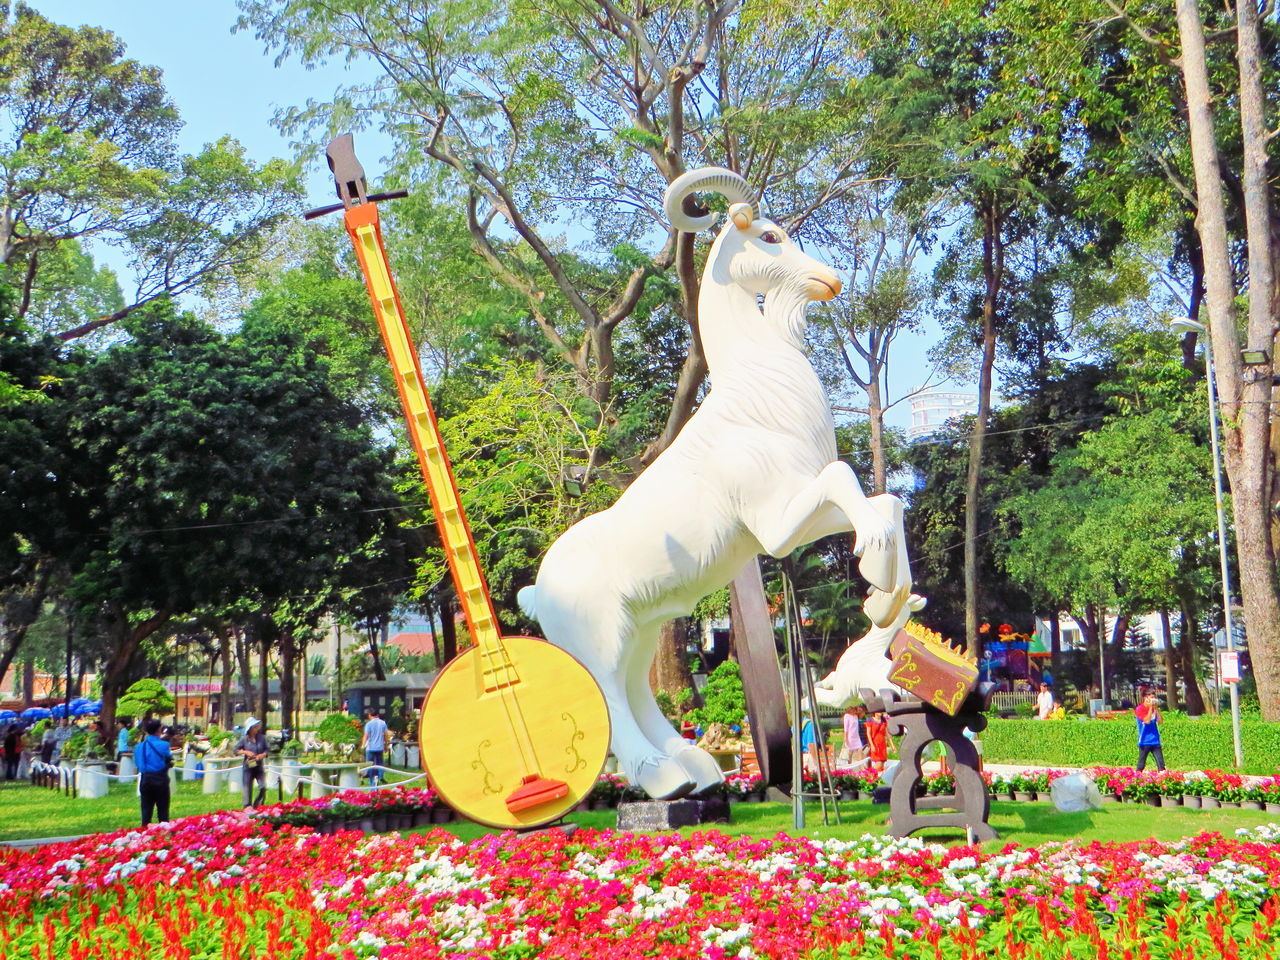 tree, horse, animal representation, day, outdoors, park - man made space, sculpture, statue, sky, multi colored, carousel, no people, nature, animal themes